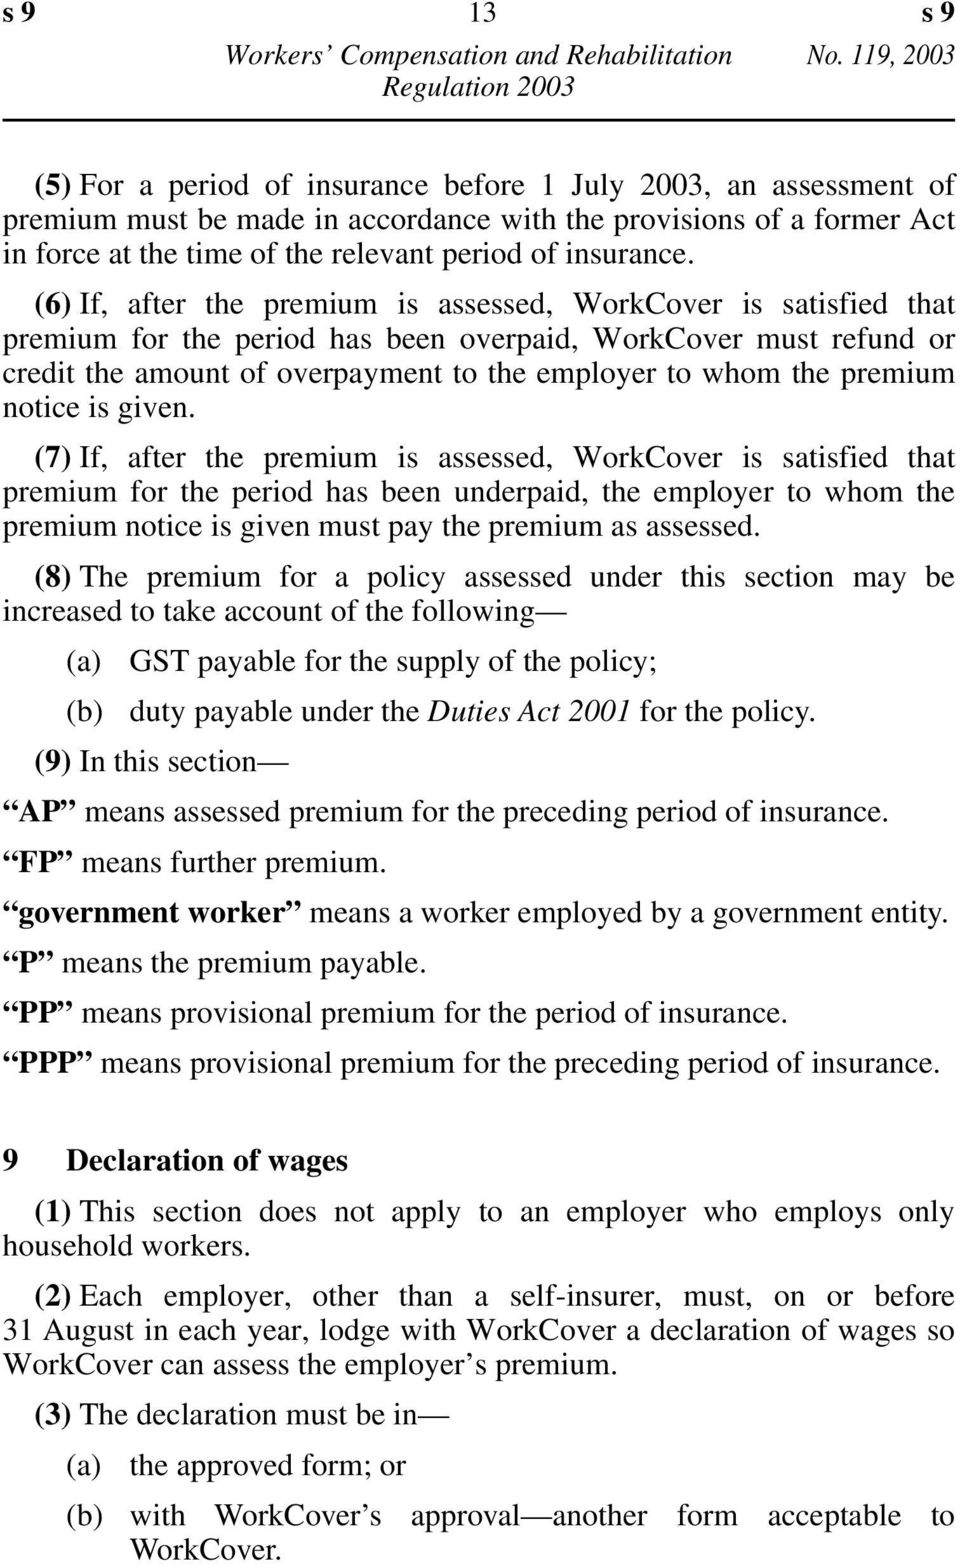 (6) If, after the premium is assessed, WorkCover is satisfied that premium for the period has been overpaid, WorkCover must refund or credit the amount of overpayment to the employer to whom the